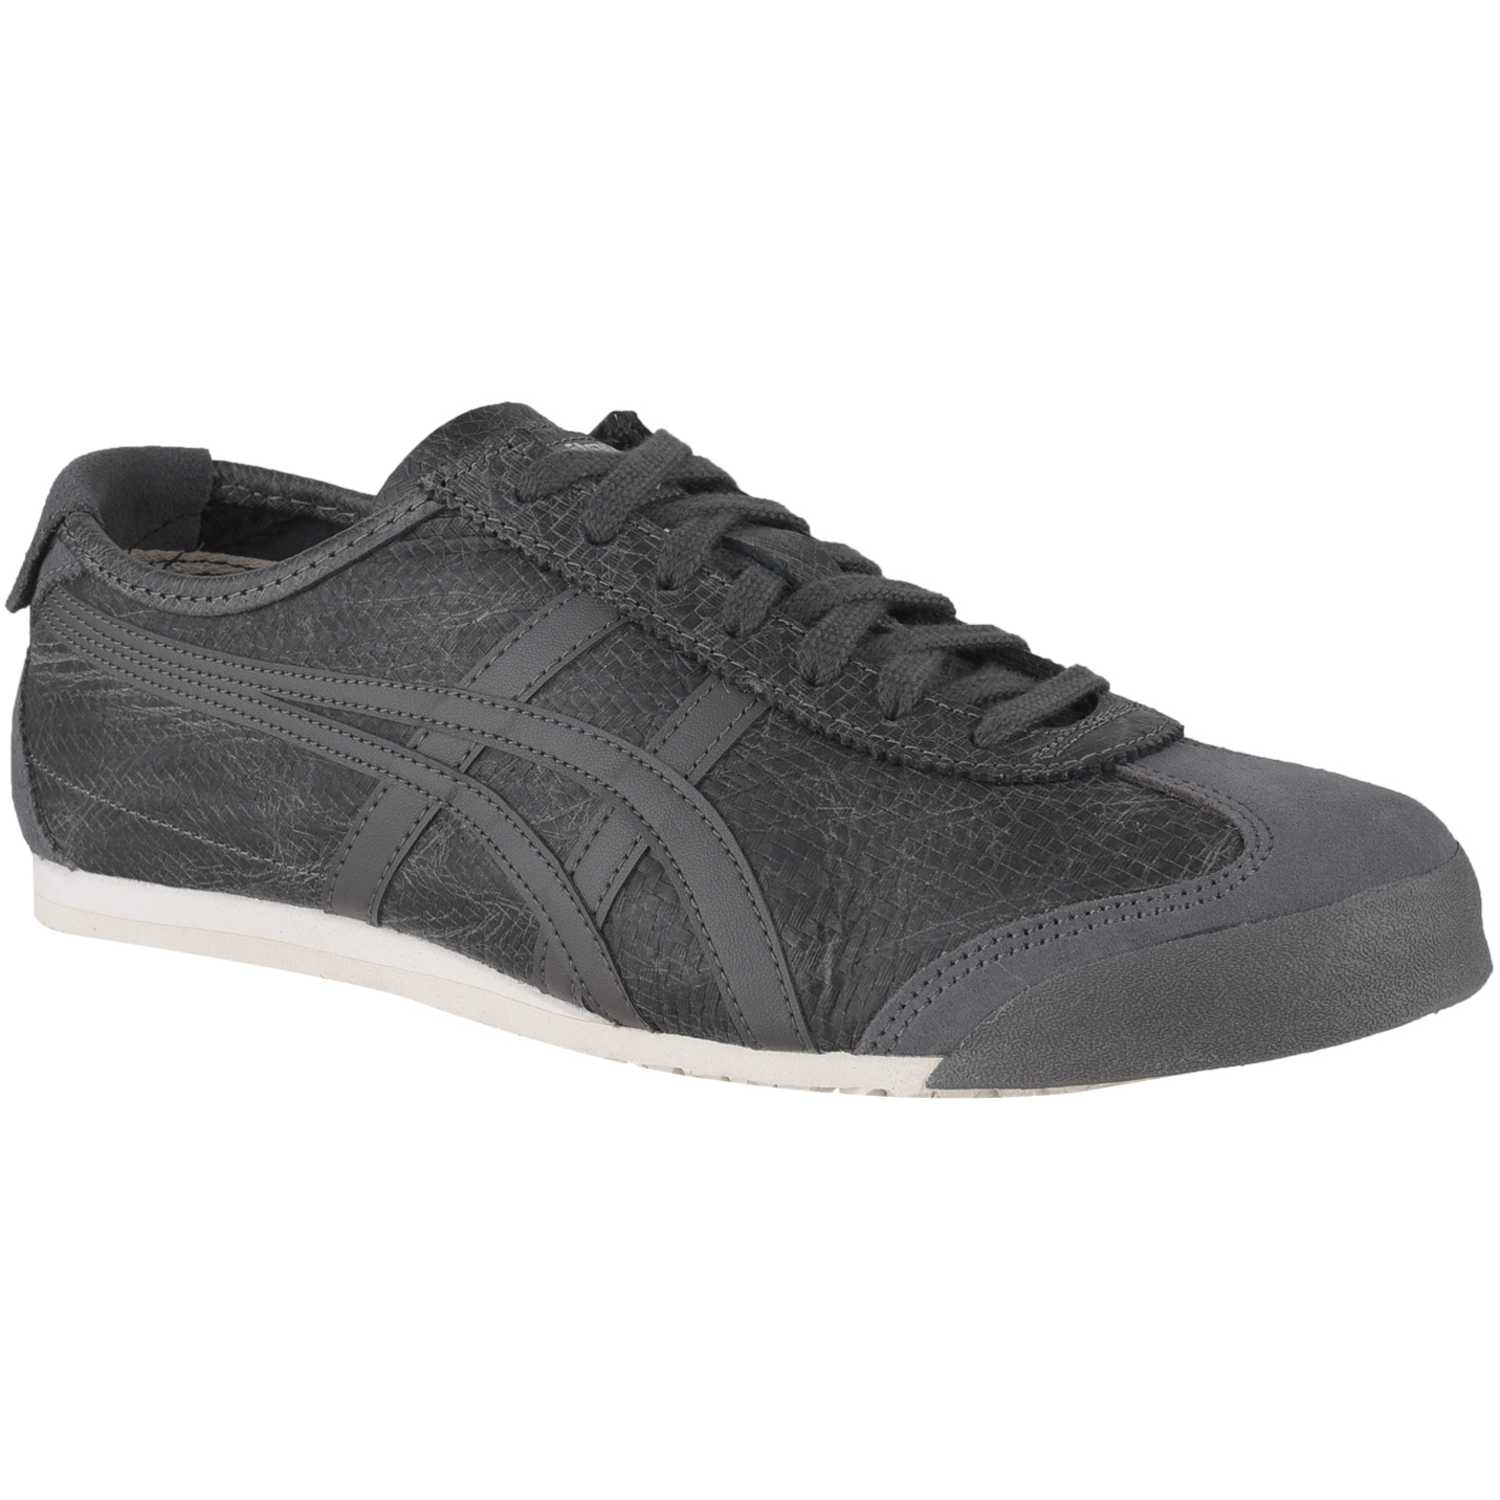 Asics mexico 66 Negro Walking